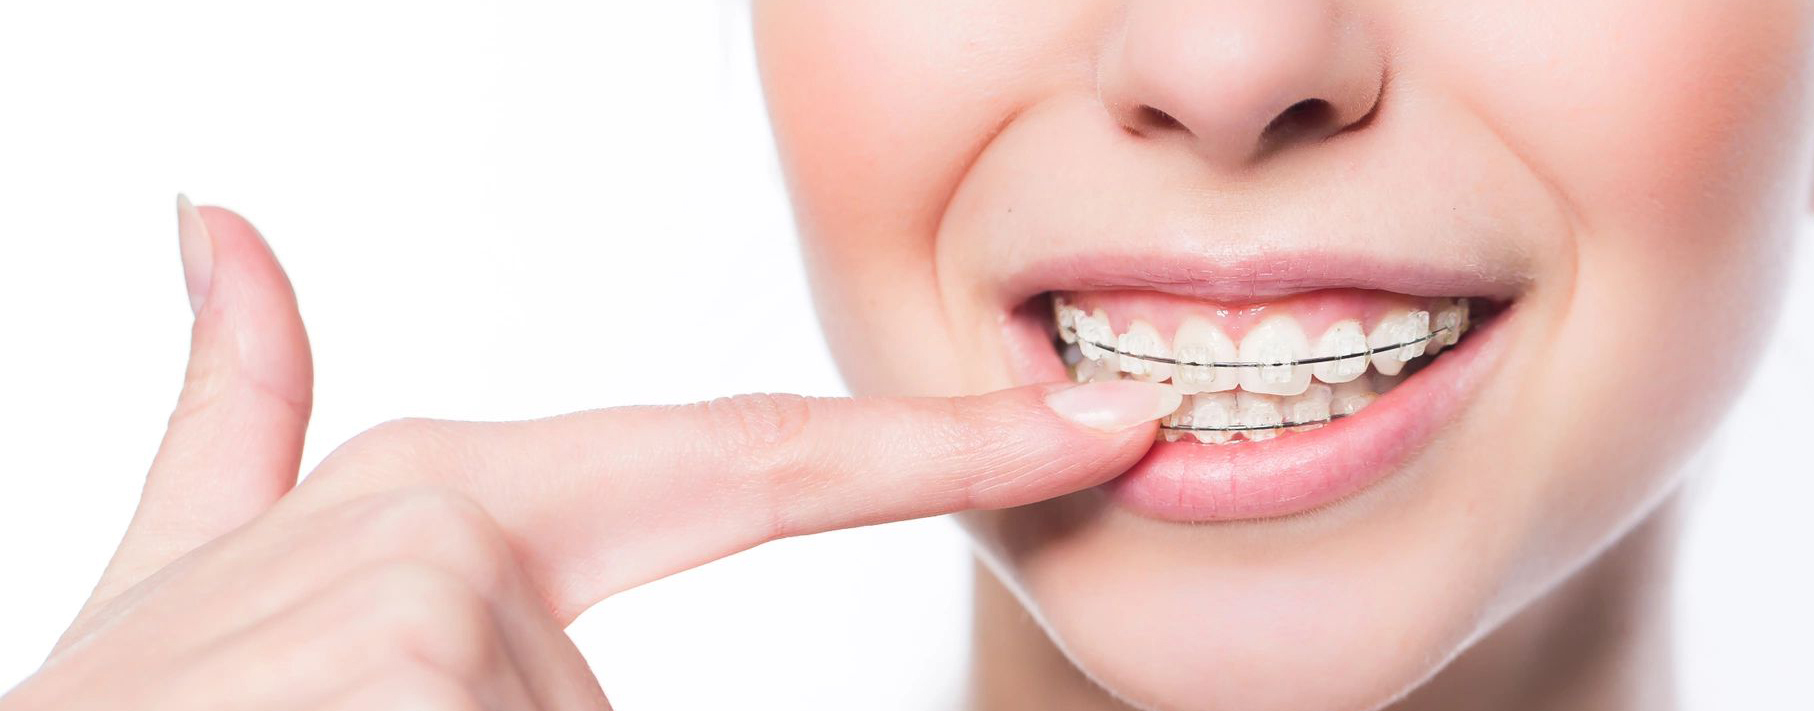 How Much Does It Cost To Get Braces in Manila